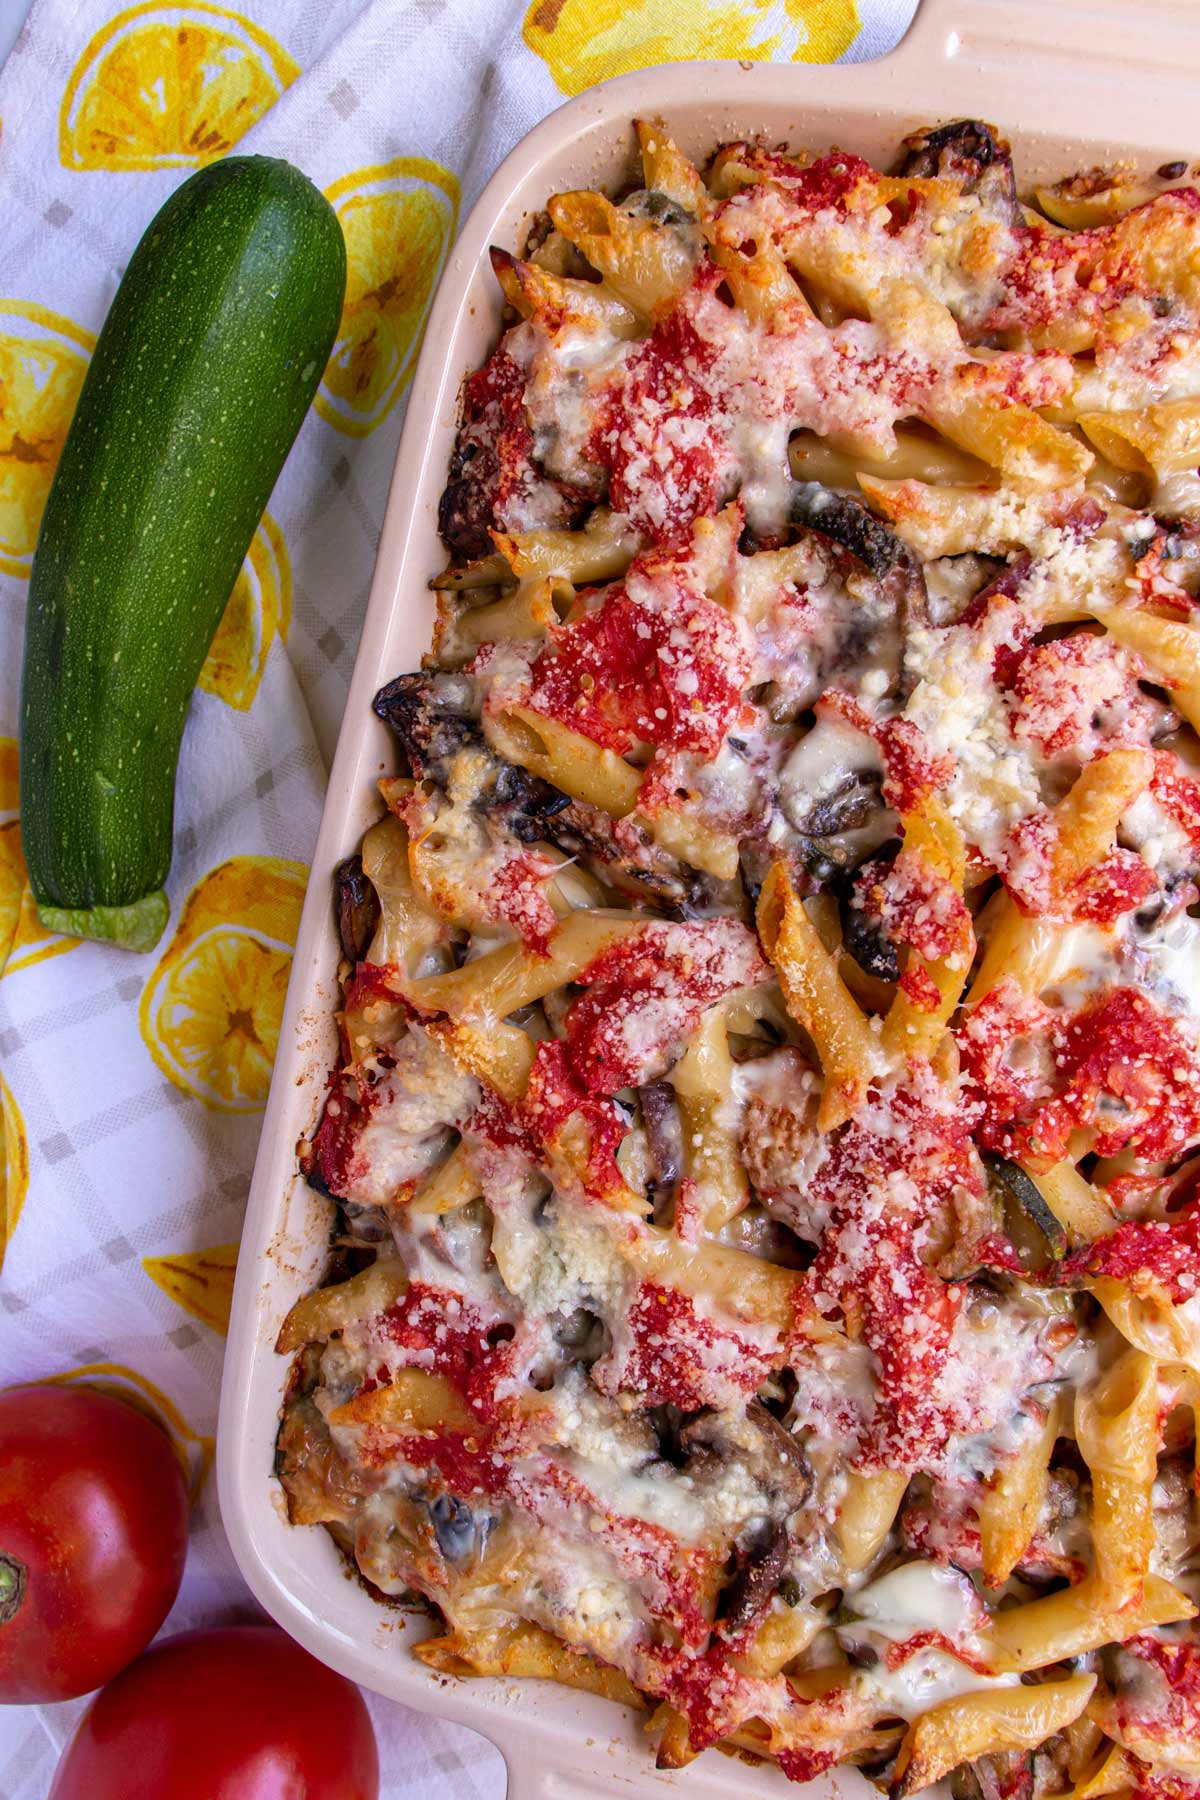 Baked pasta in a rectangular baking dish with a zucchini and tomatoes on the side.